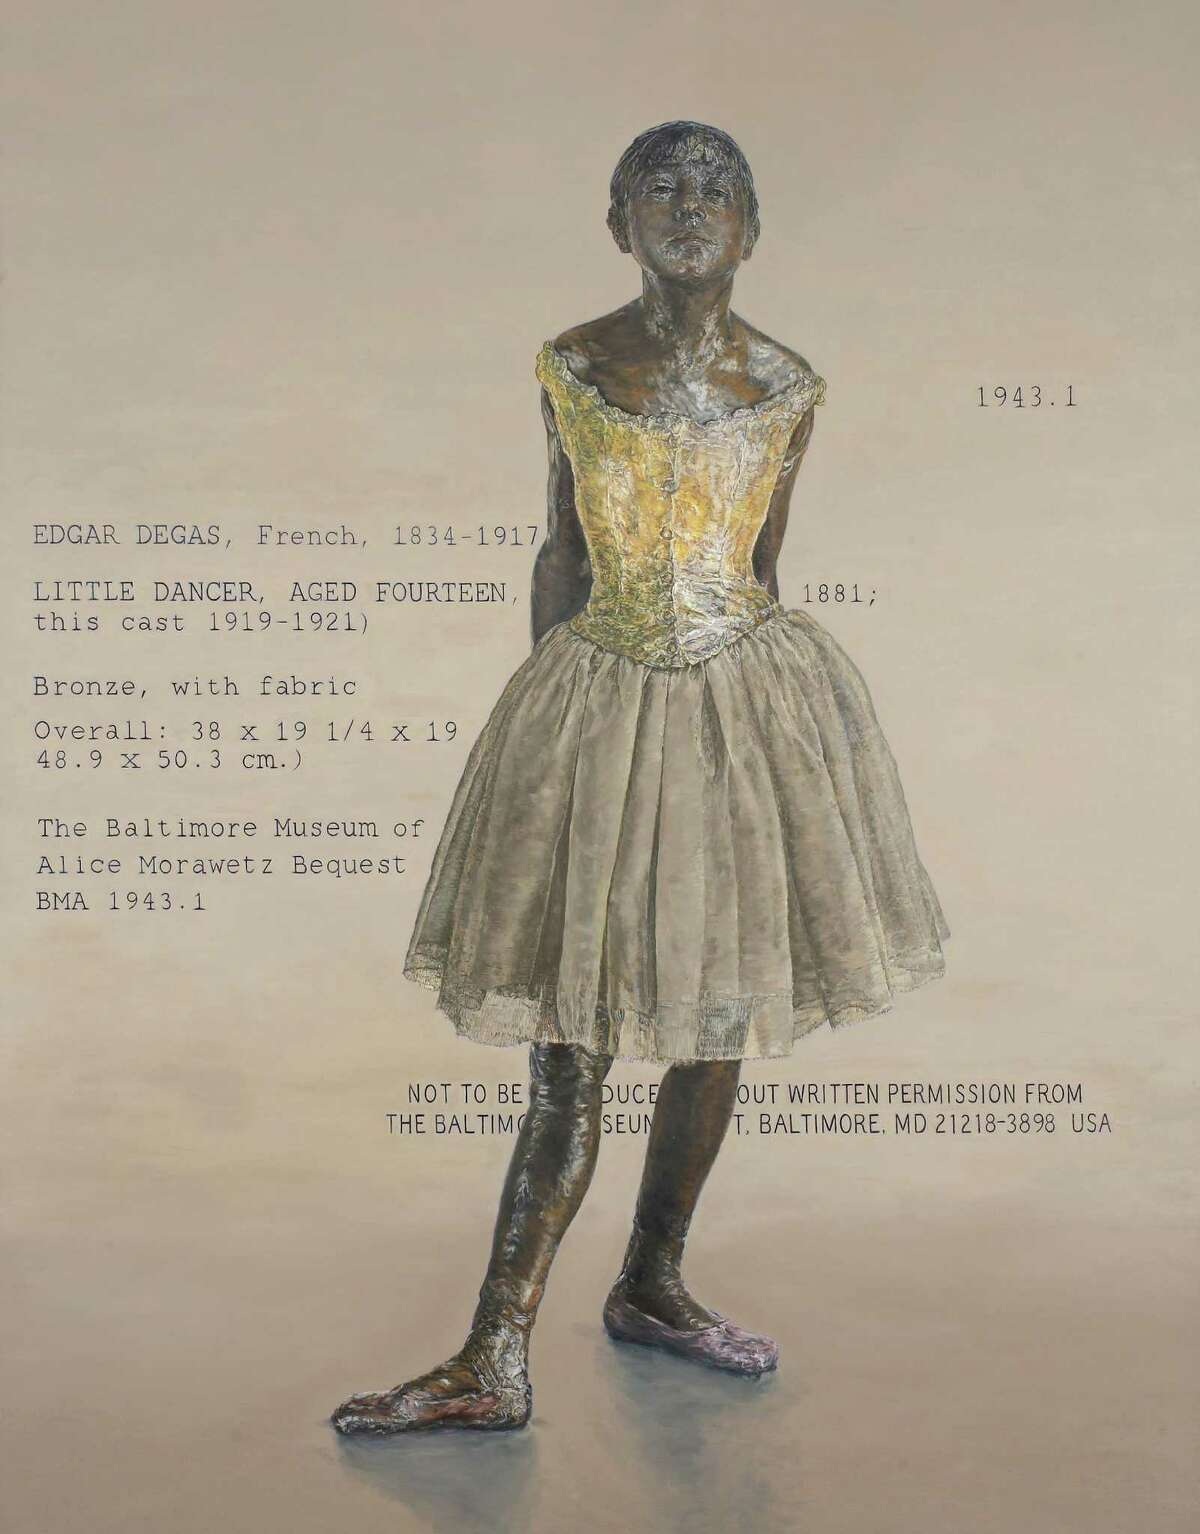 """Jane Sutherland's """"Little Dancer"""" series of paintings is inspired by Edgar Degas' great work. This painting is included in """"Dance,"""" an exhibition at Fairfield University's Quick Center."""